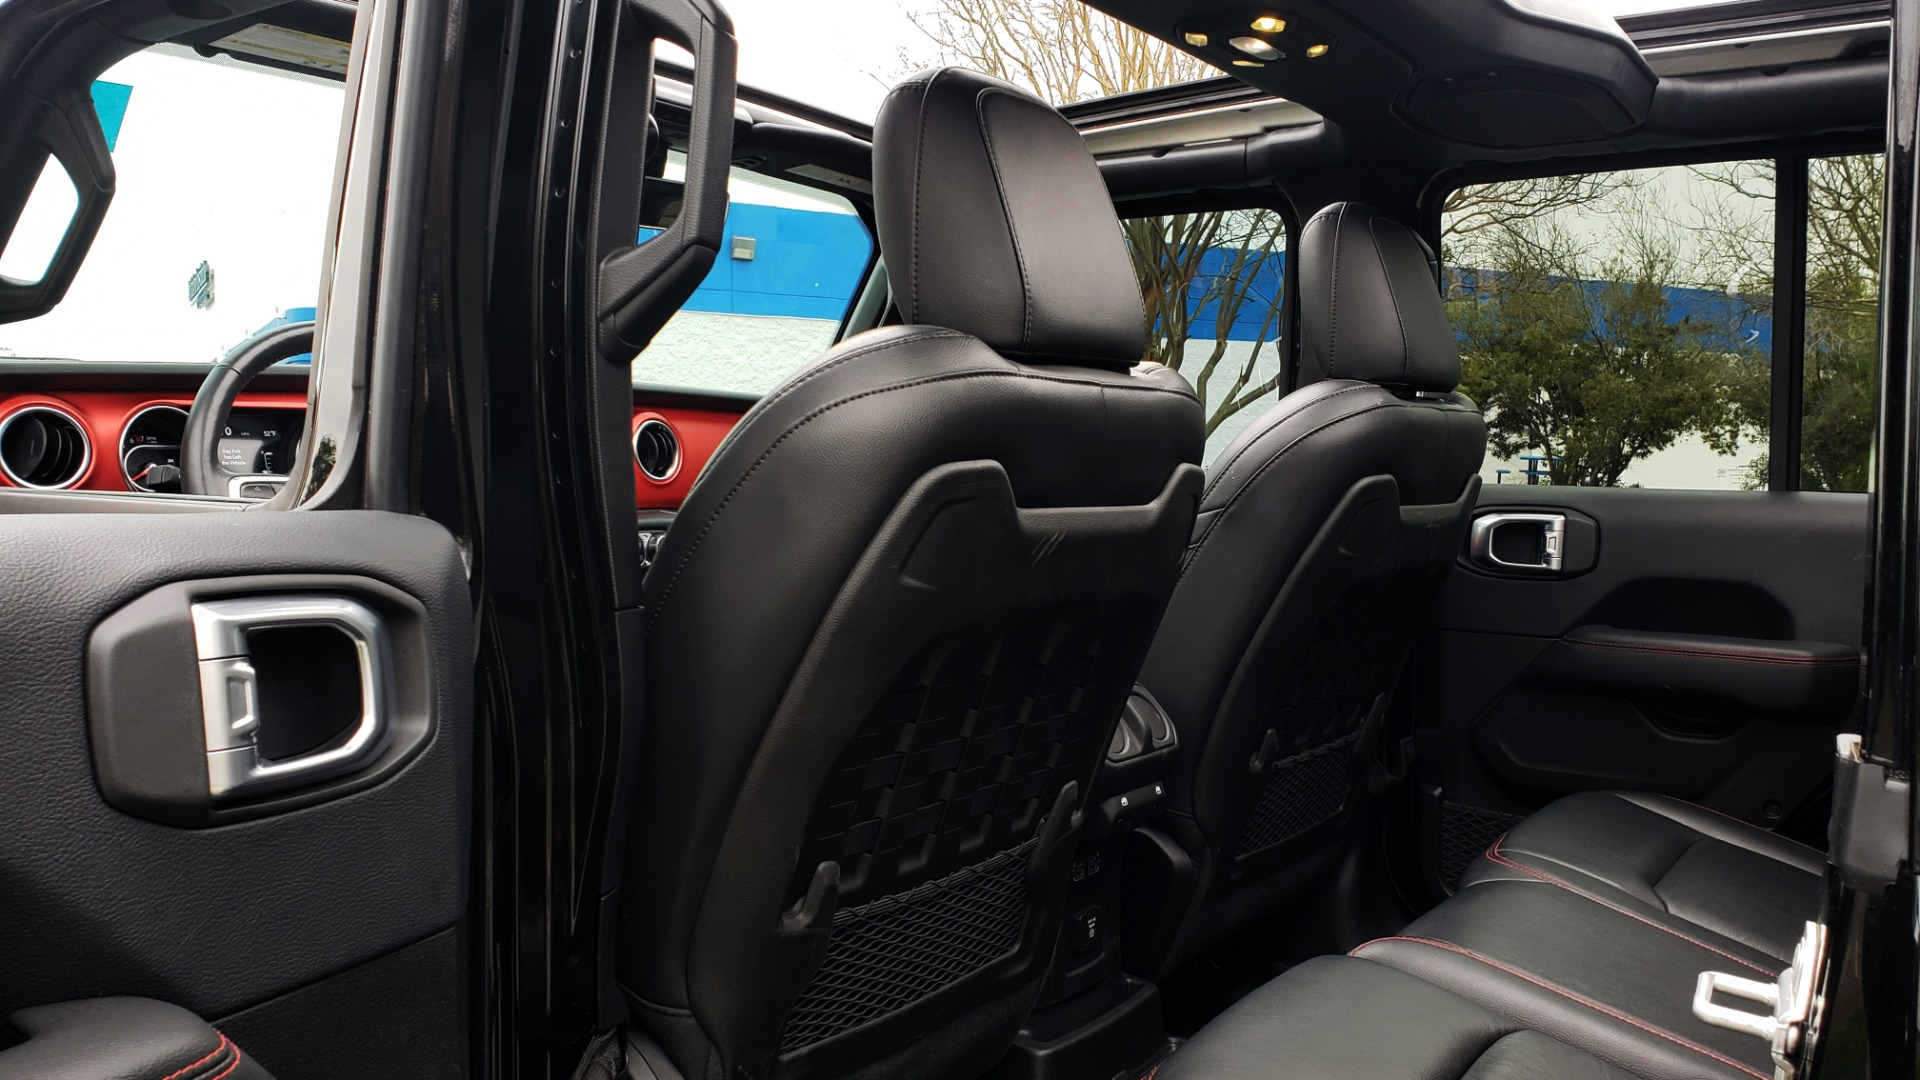 Used 2019 Jeep WRANGLER UNLIMITED RUBICON 4WD / V6 / 8-SPD AUTO / NAV / PWR TOP / REARVIEW for sale Sold at Formula Imports in Charlotte NC 28227 86